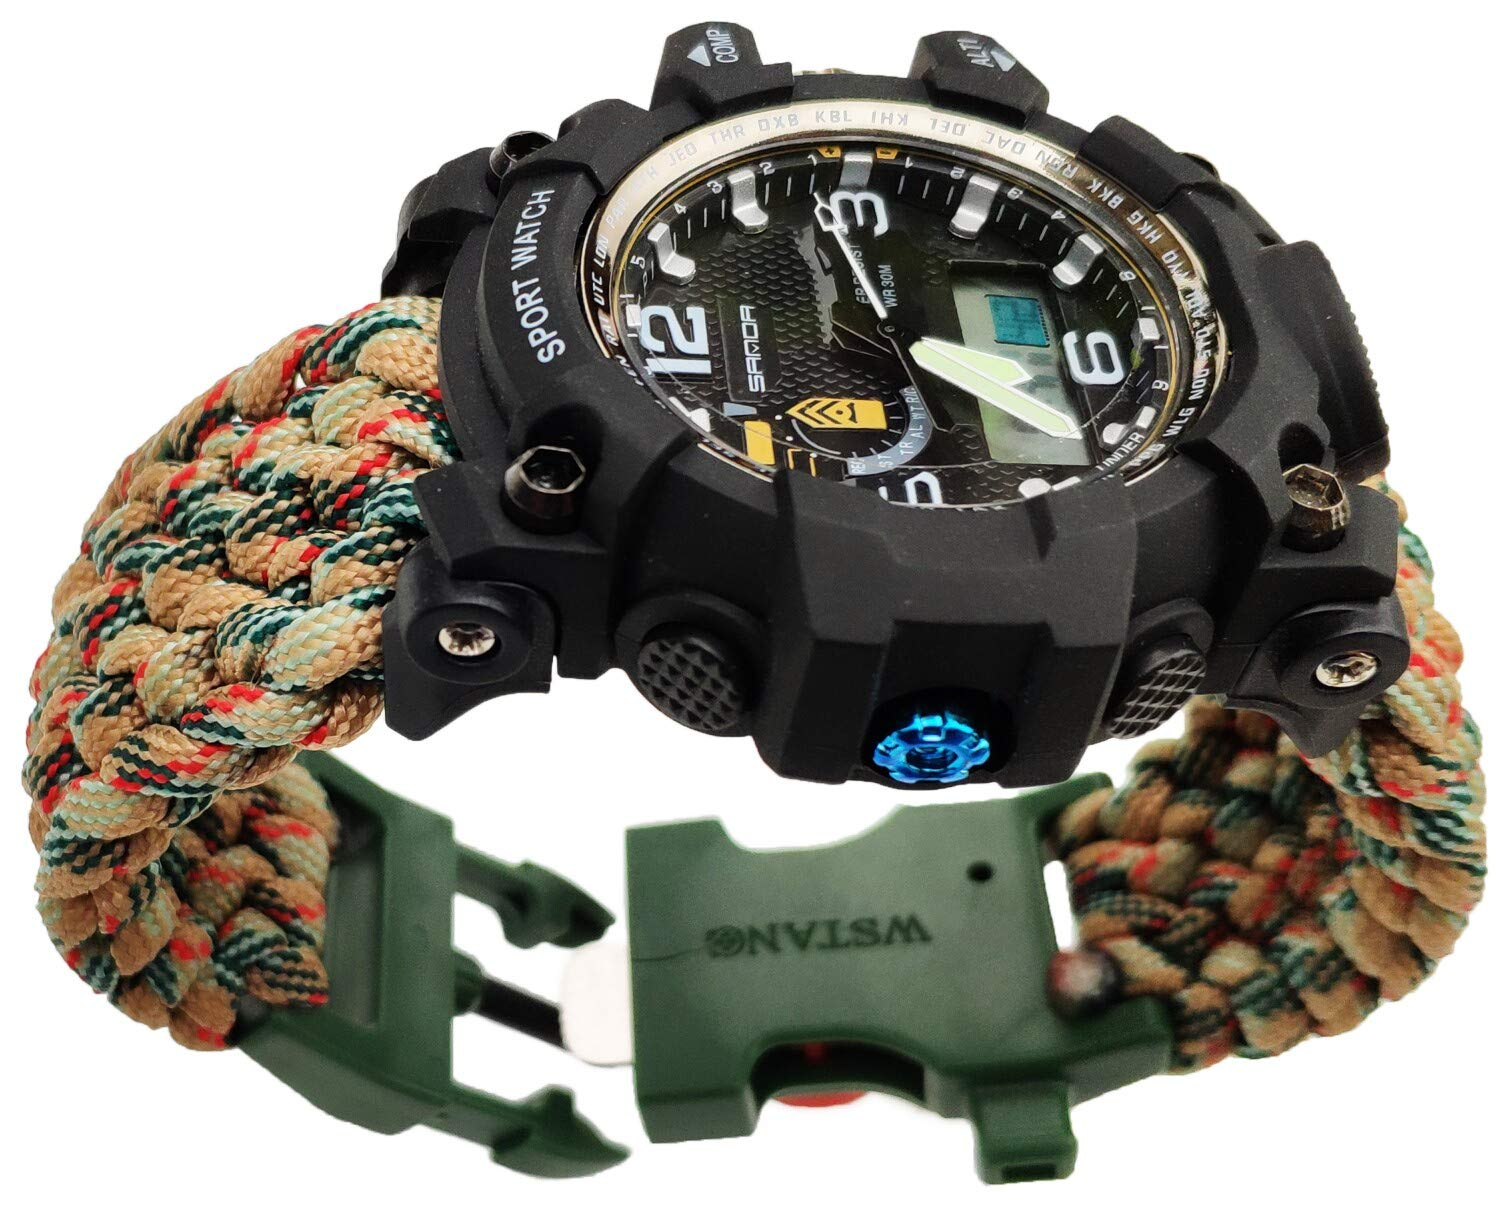 8'' Green Camo Handmade 550 Paracord Bracelet Watch Compass Water Resistant Date&Day Stopwatch Chronograph Alarm LED Backlight